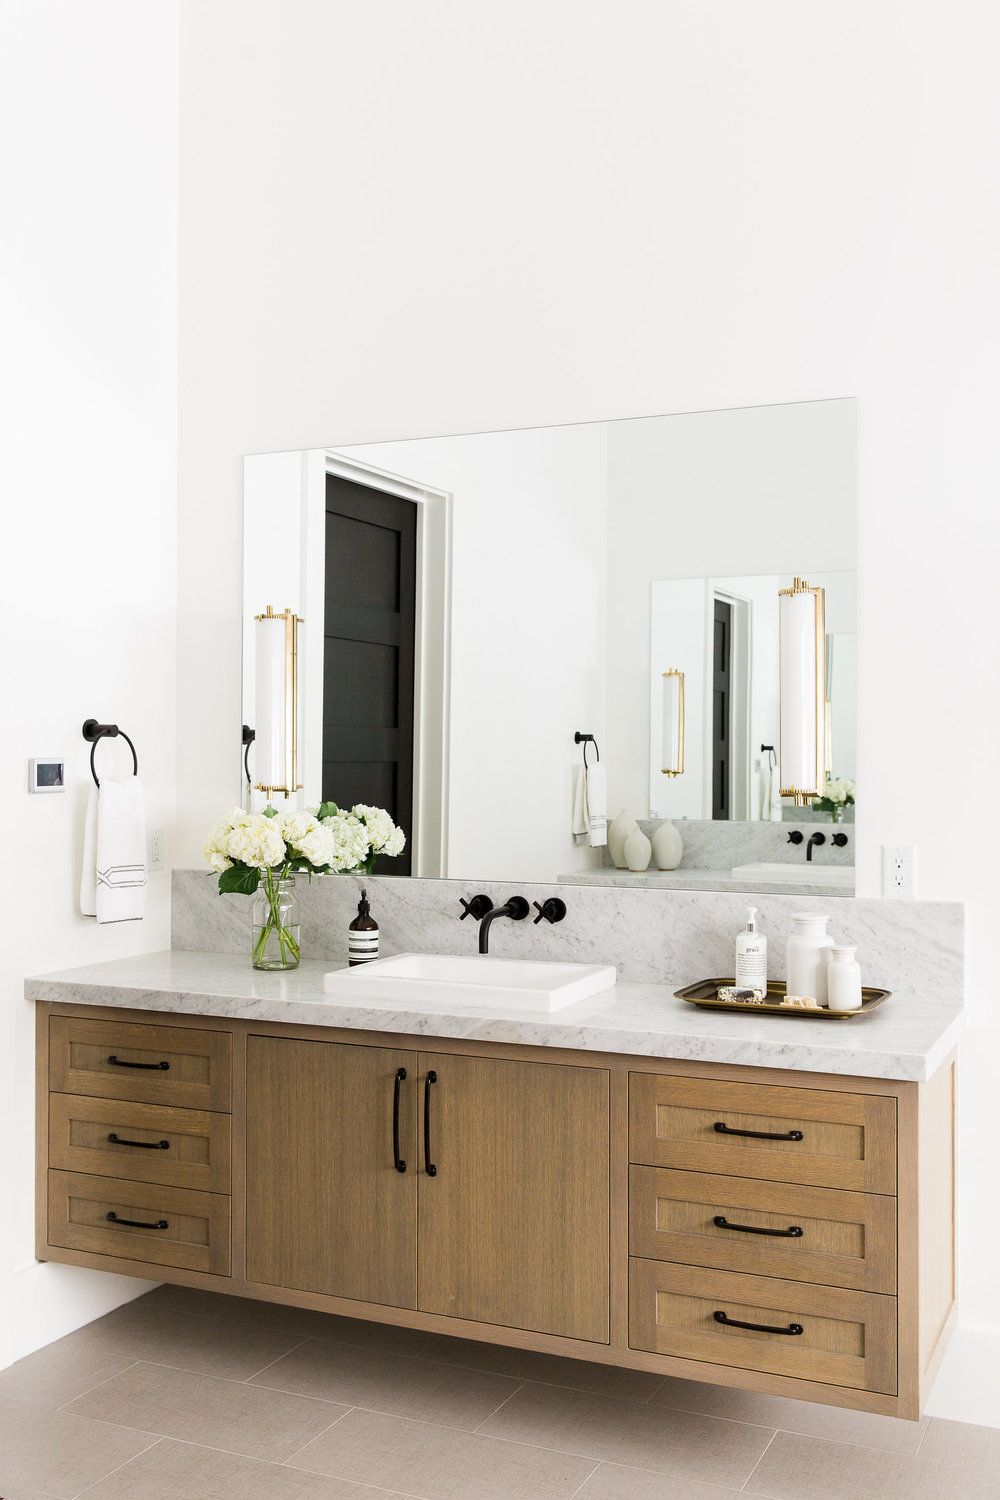 Bathroom Vanities Utah breathtaking modern mountain home in utah with luxe details | utah